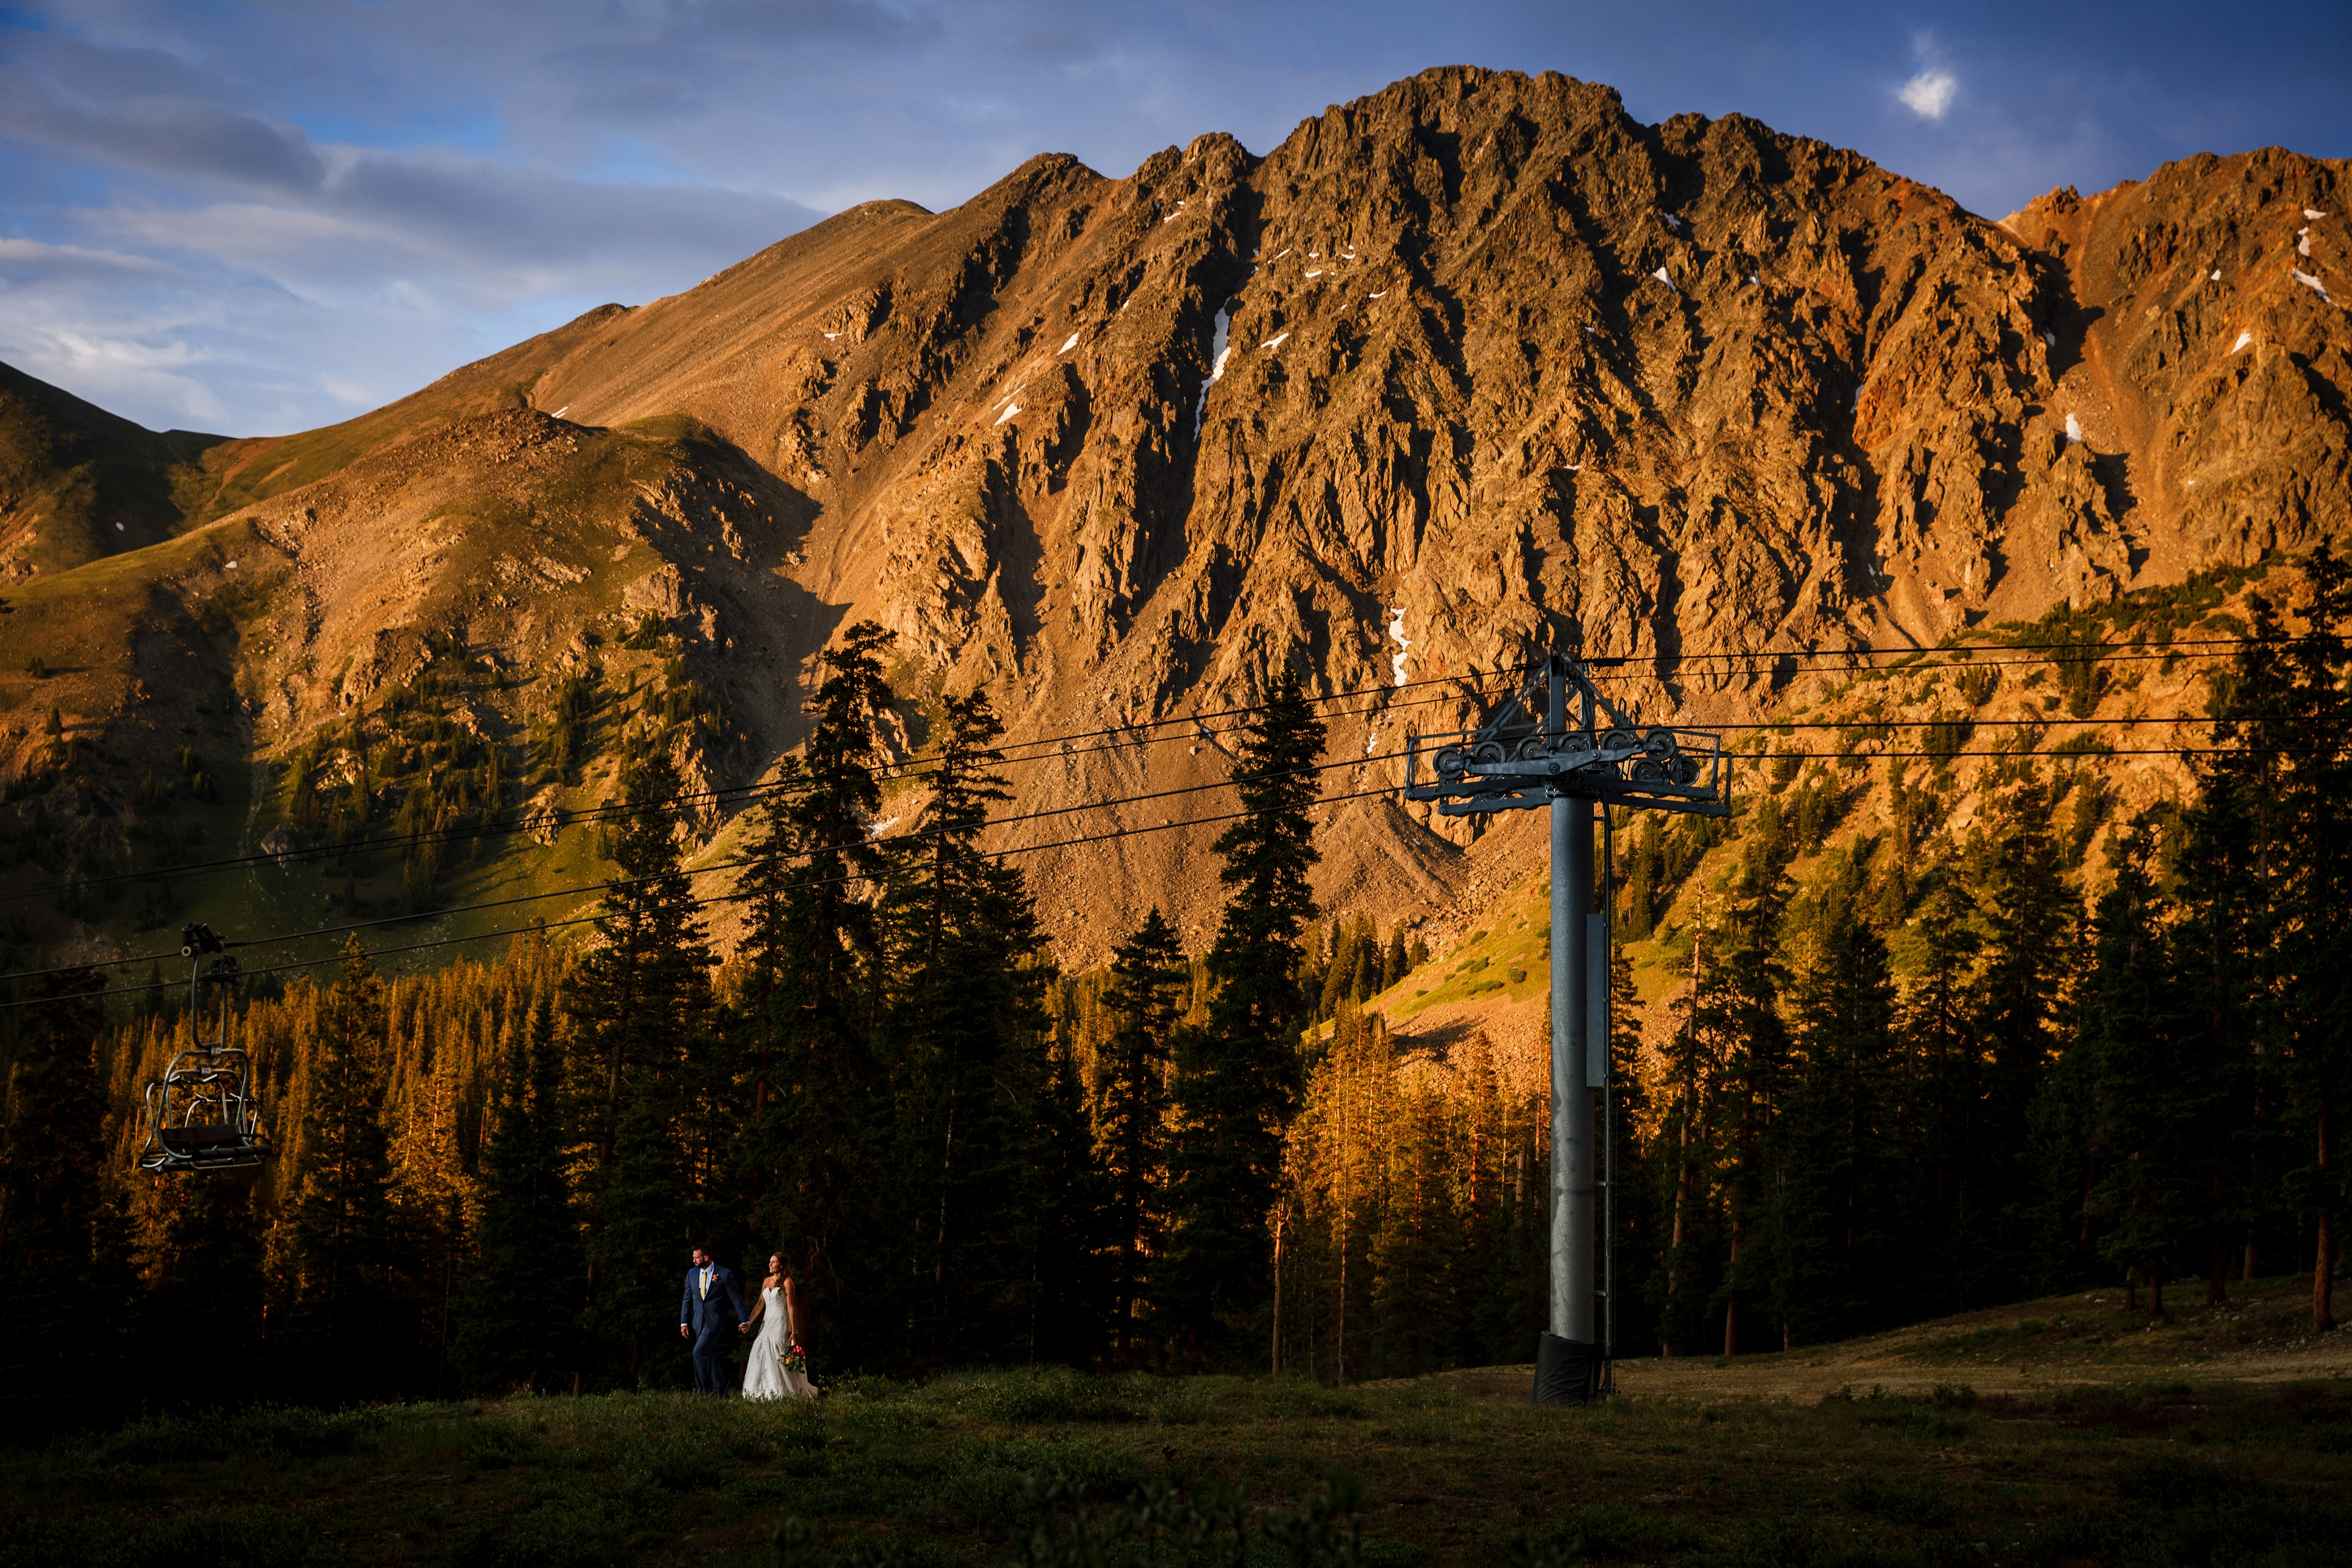 The newly wed couple with the East Wall Alpin Glow for their A Basin Wedding